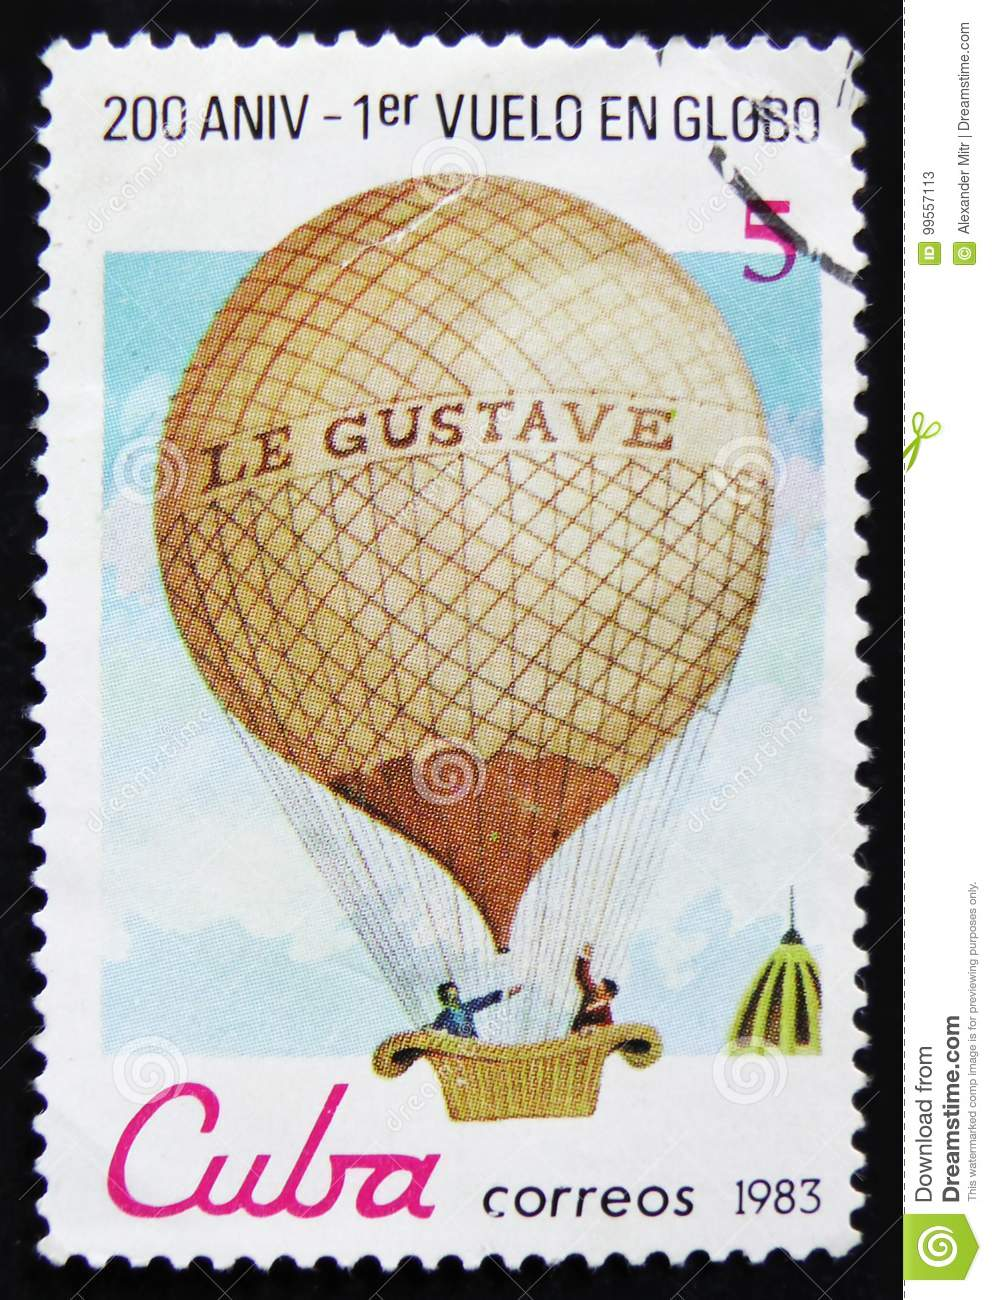 Cuba postage stamp shows Montgolfier balloon `Le Gustave`, series `Bicentenary of the 1st Manned Balloon Flight`, circa 1983